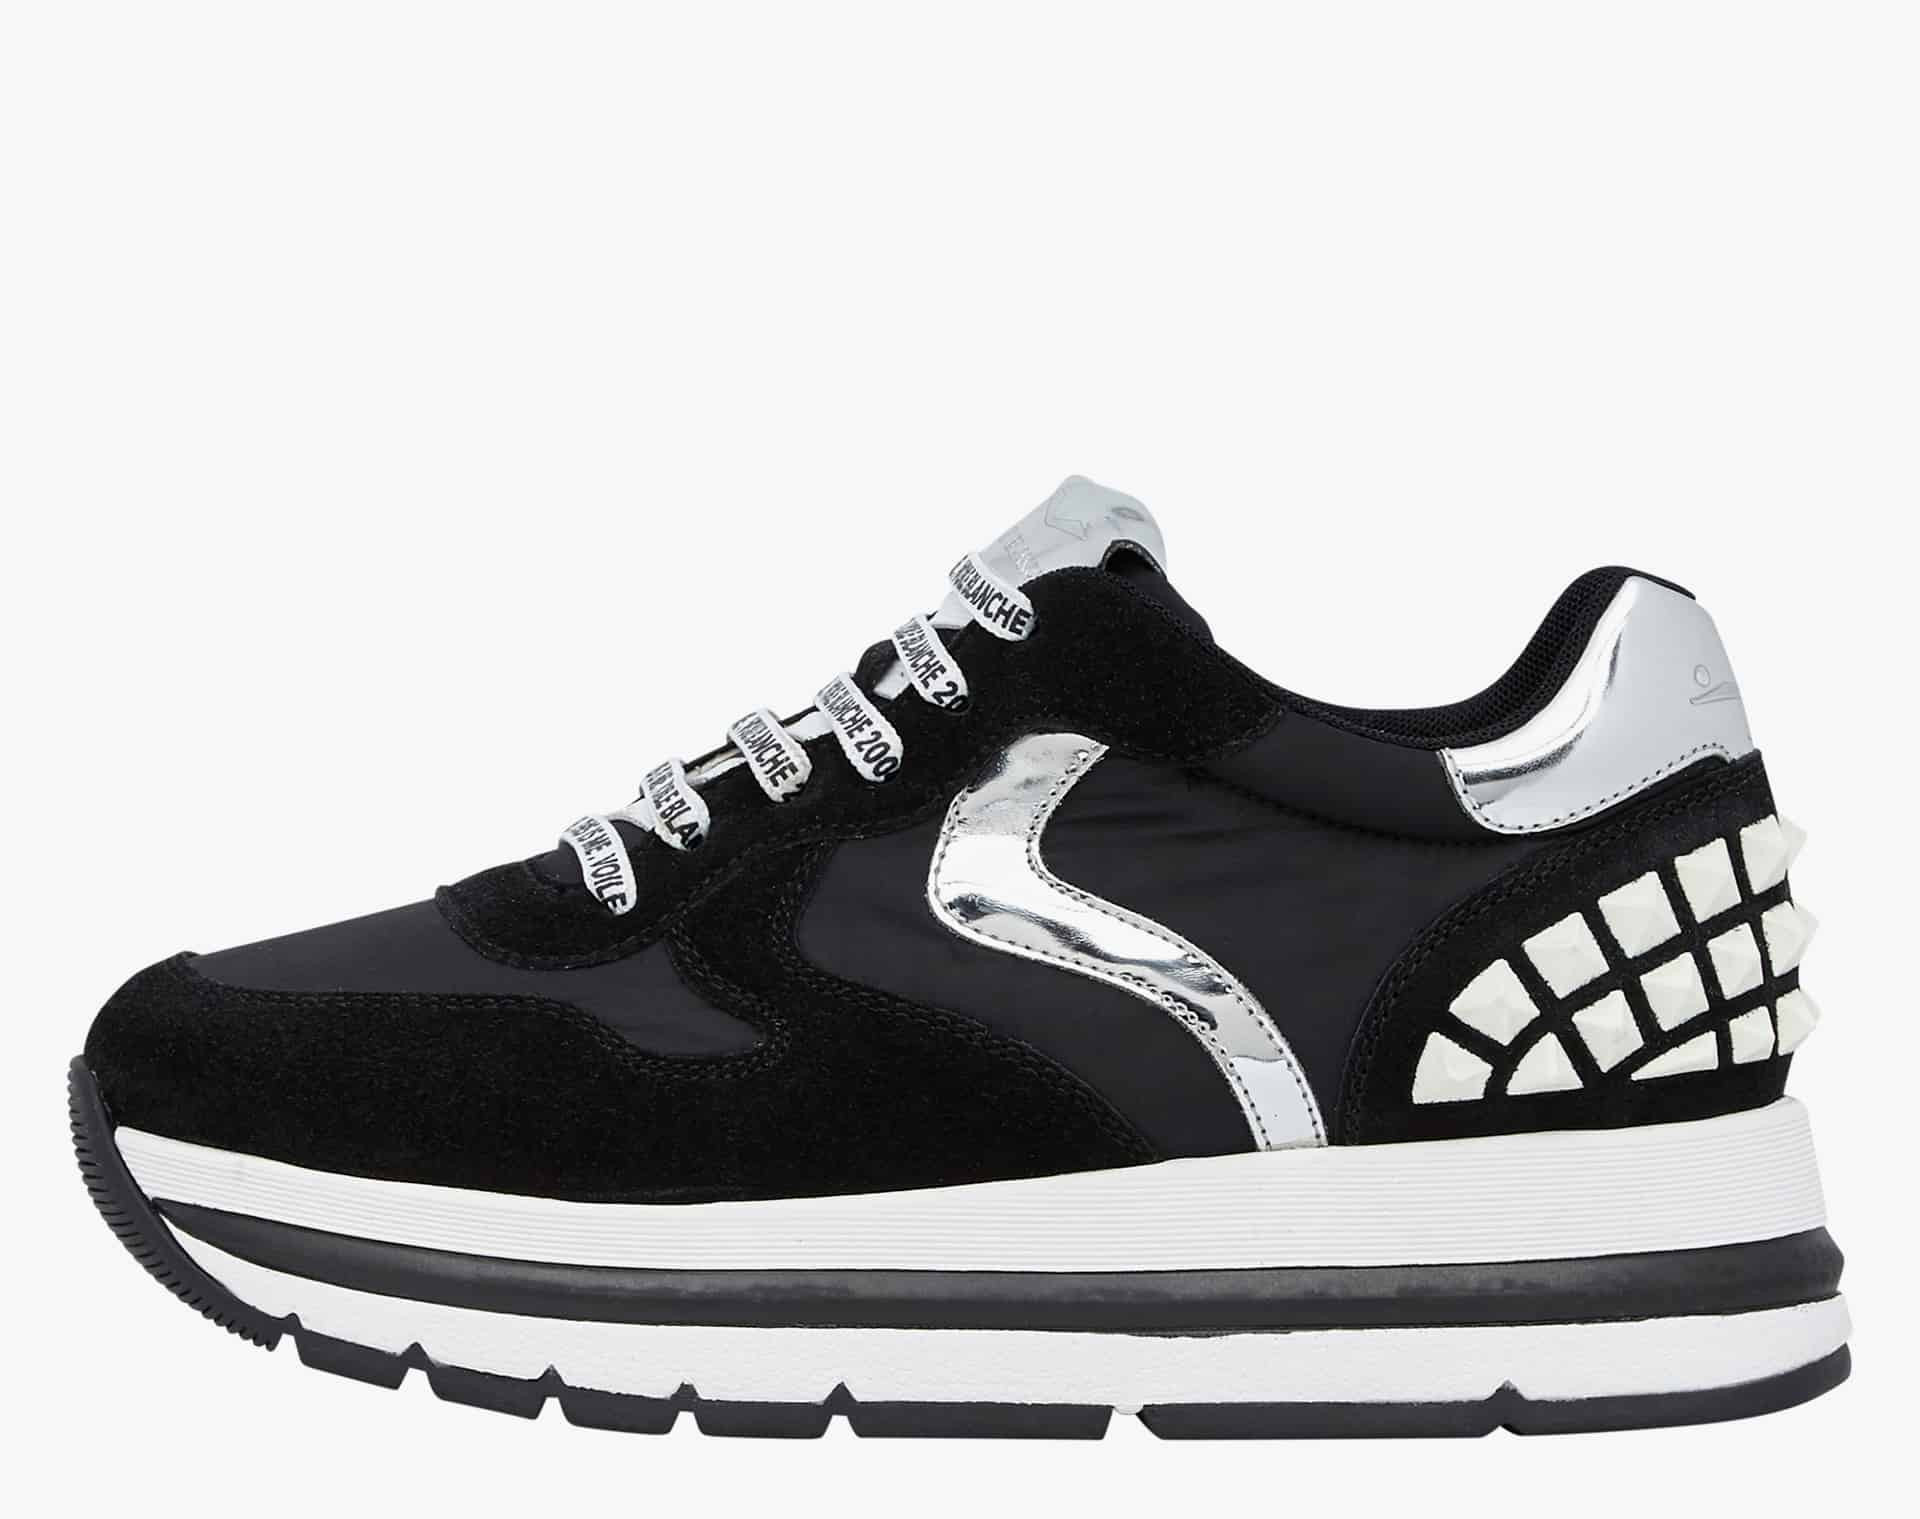 MARAN STUDS - Sneakers in leather and nylon - Black-White